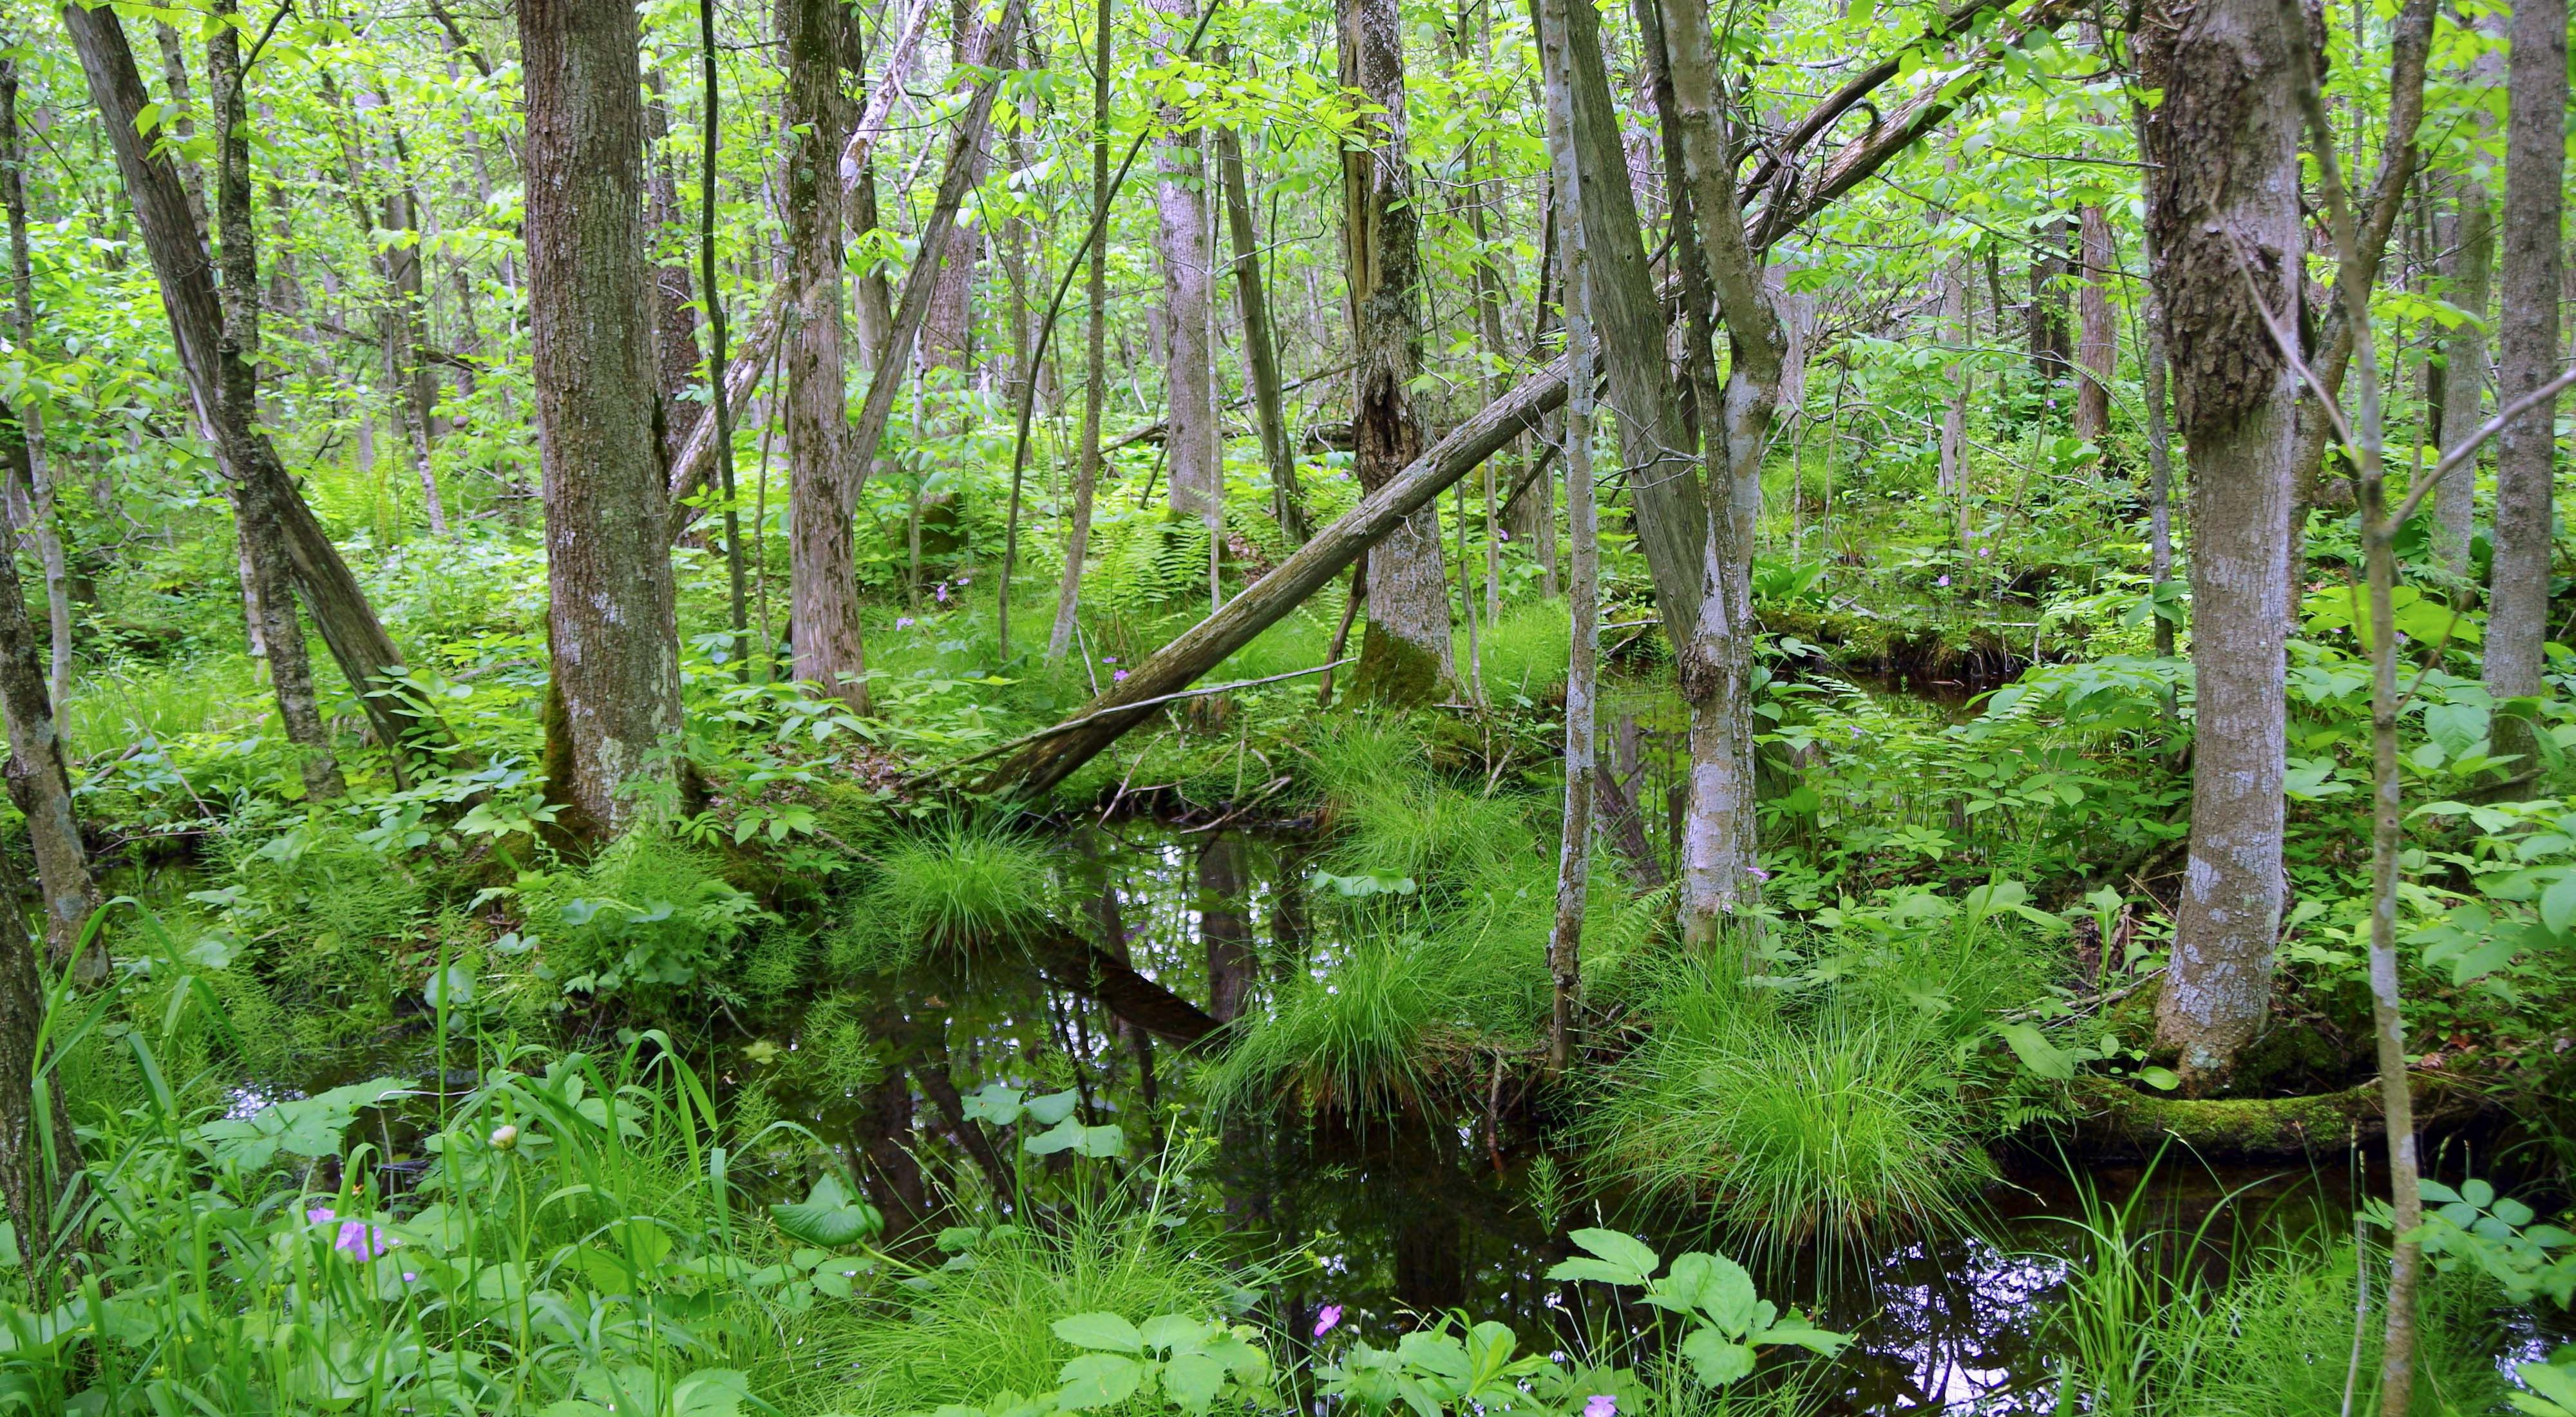 Forested wetland with trees, standing water, flowers